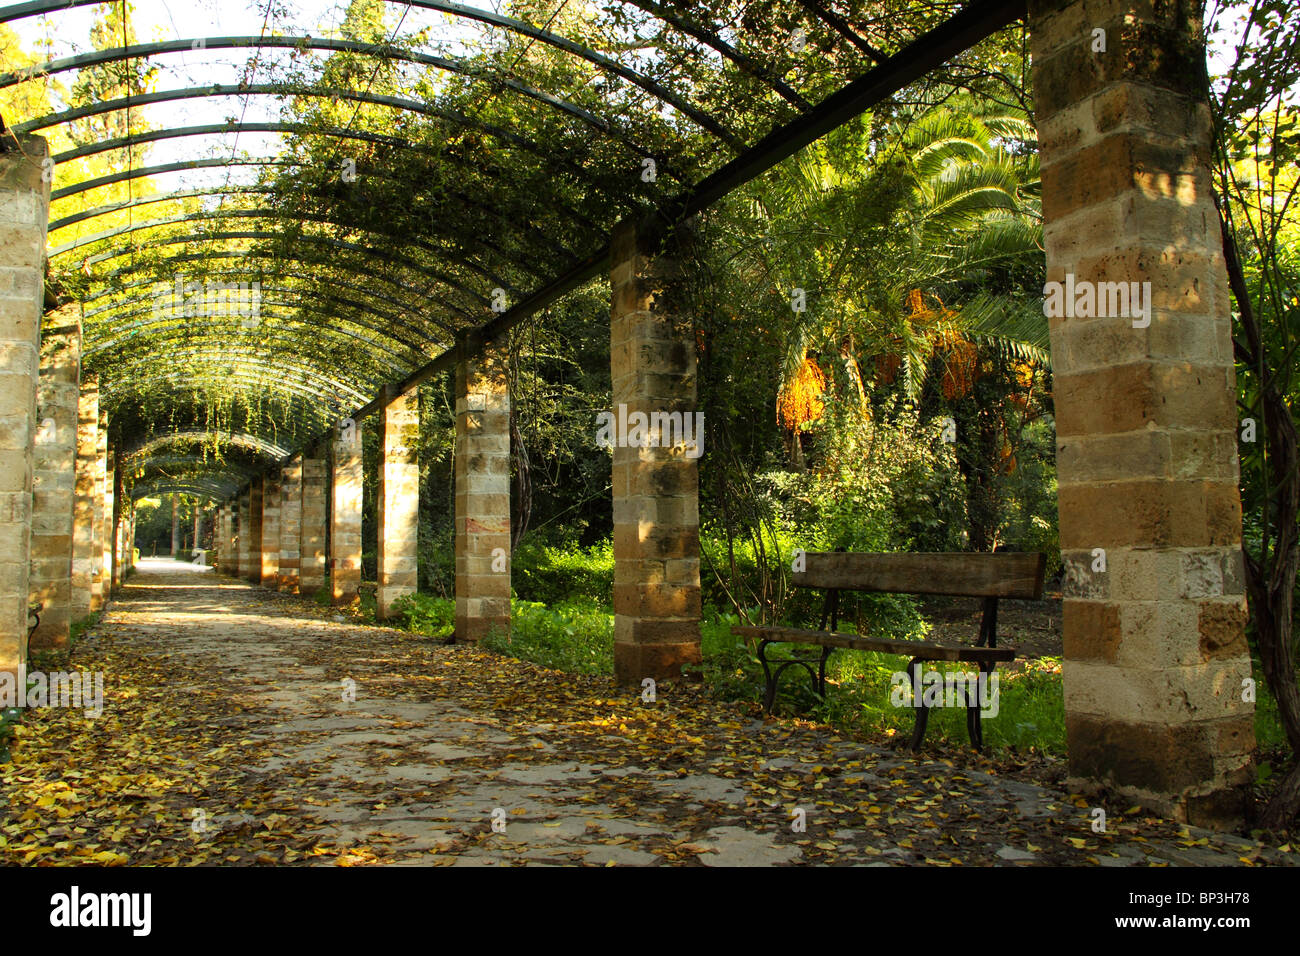 National Gardens Of Athens Stock Photos & National Gardens Of Athens ...